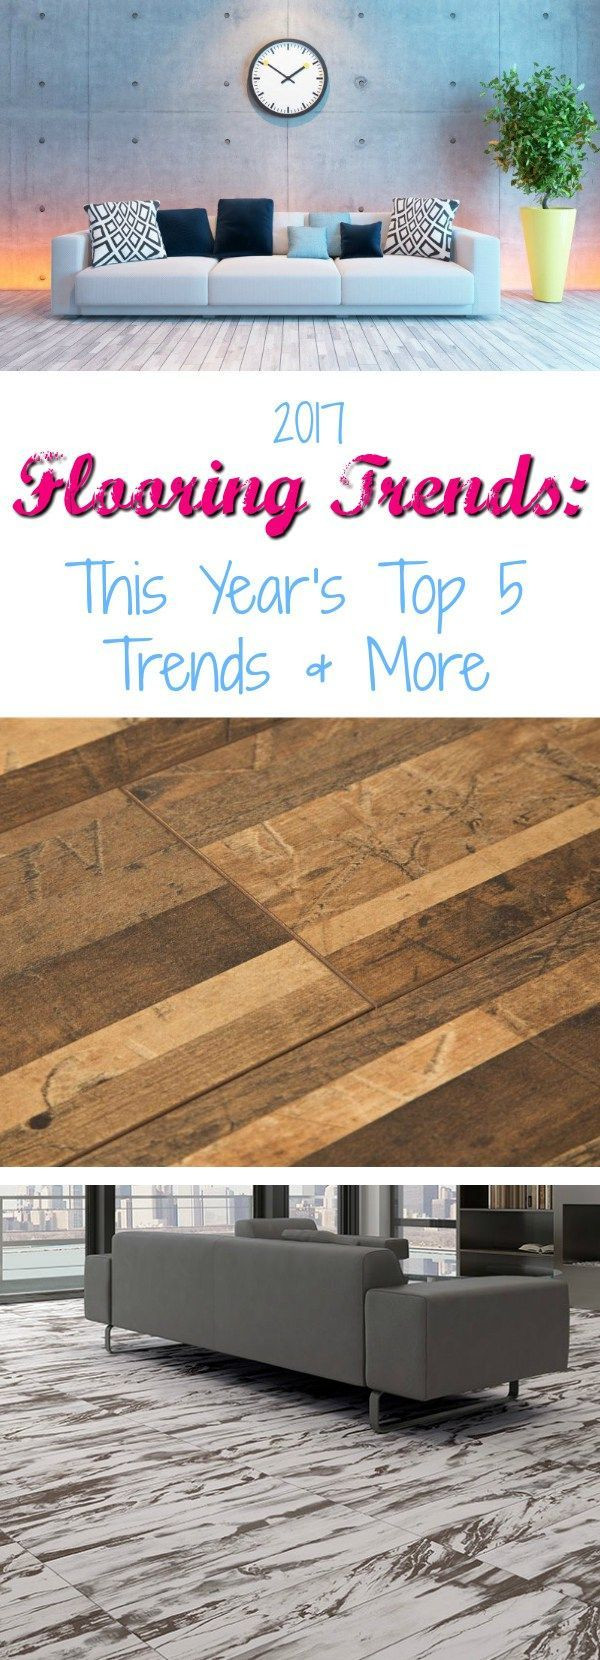 hardwood flooring installation baton rouge of 262 best flooringinc contributors images on pinterest flooring throughout 2017 flooring trends this years top 5 trends more